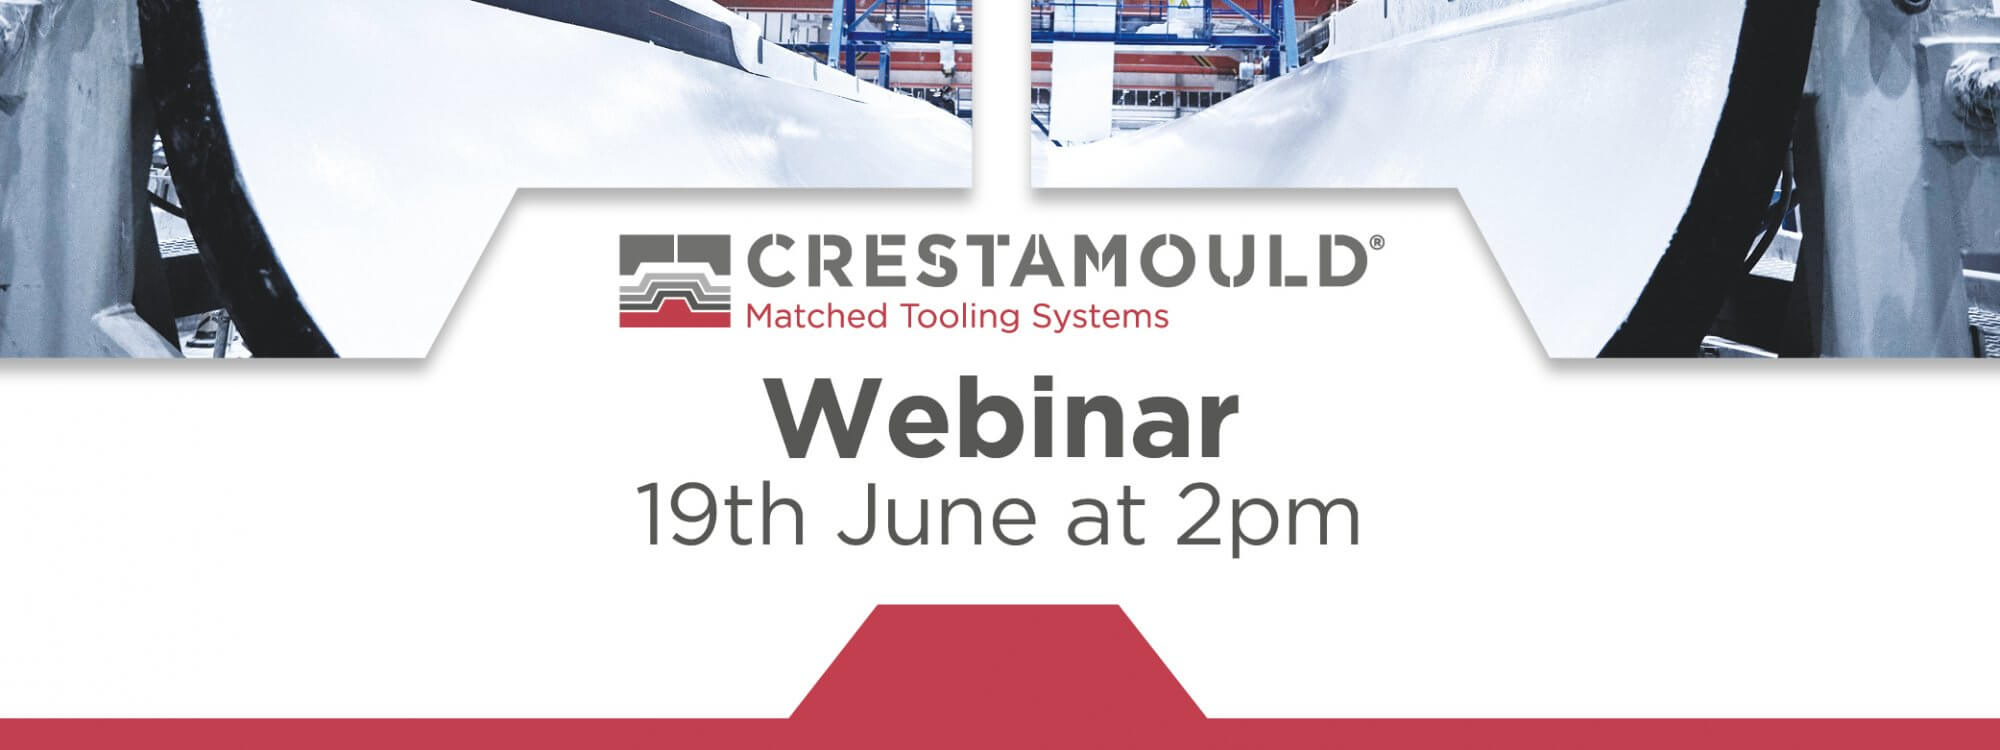 Scott Bader's Crestamould<sup>®</sup> Matched Tooling Systems webinar